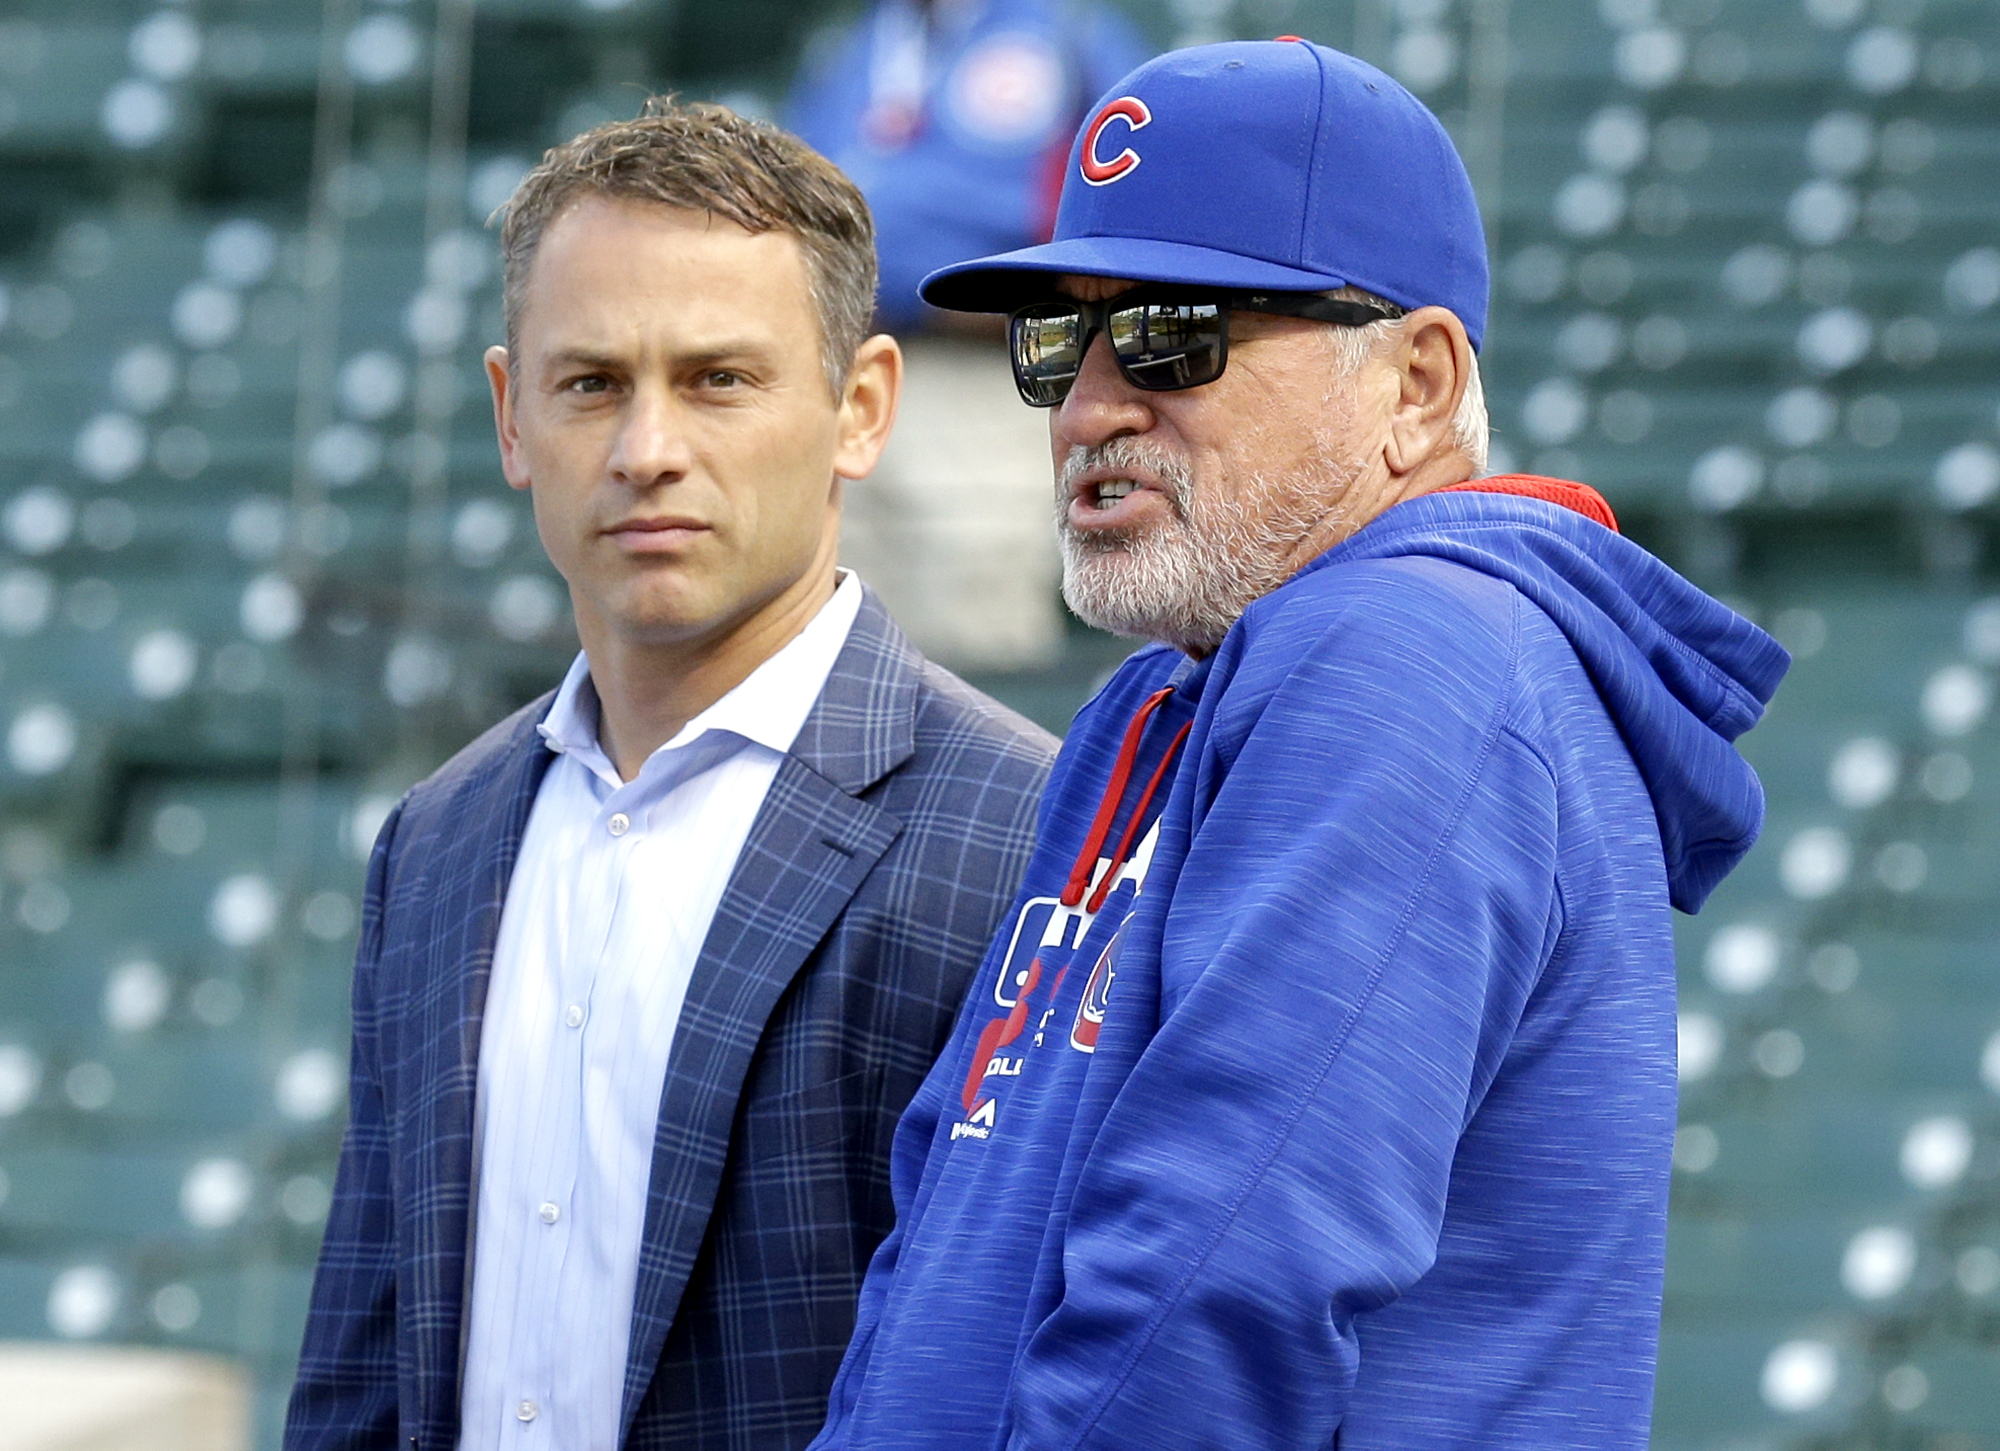 Chicago Cubs manager Joe Maddon, right, talks with general manager Jed Hoyer at the Wrigley Field before the start of an opening day baseball game between the Cincinnati Reds and the Chicago Cubs on Monday, April 11, 2016, in Chicago. (AP Photo/Nam Y. Huh